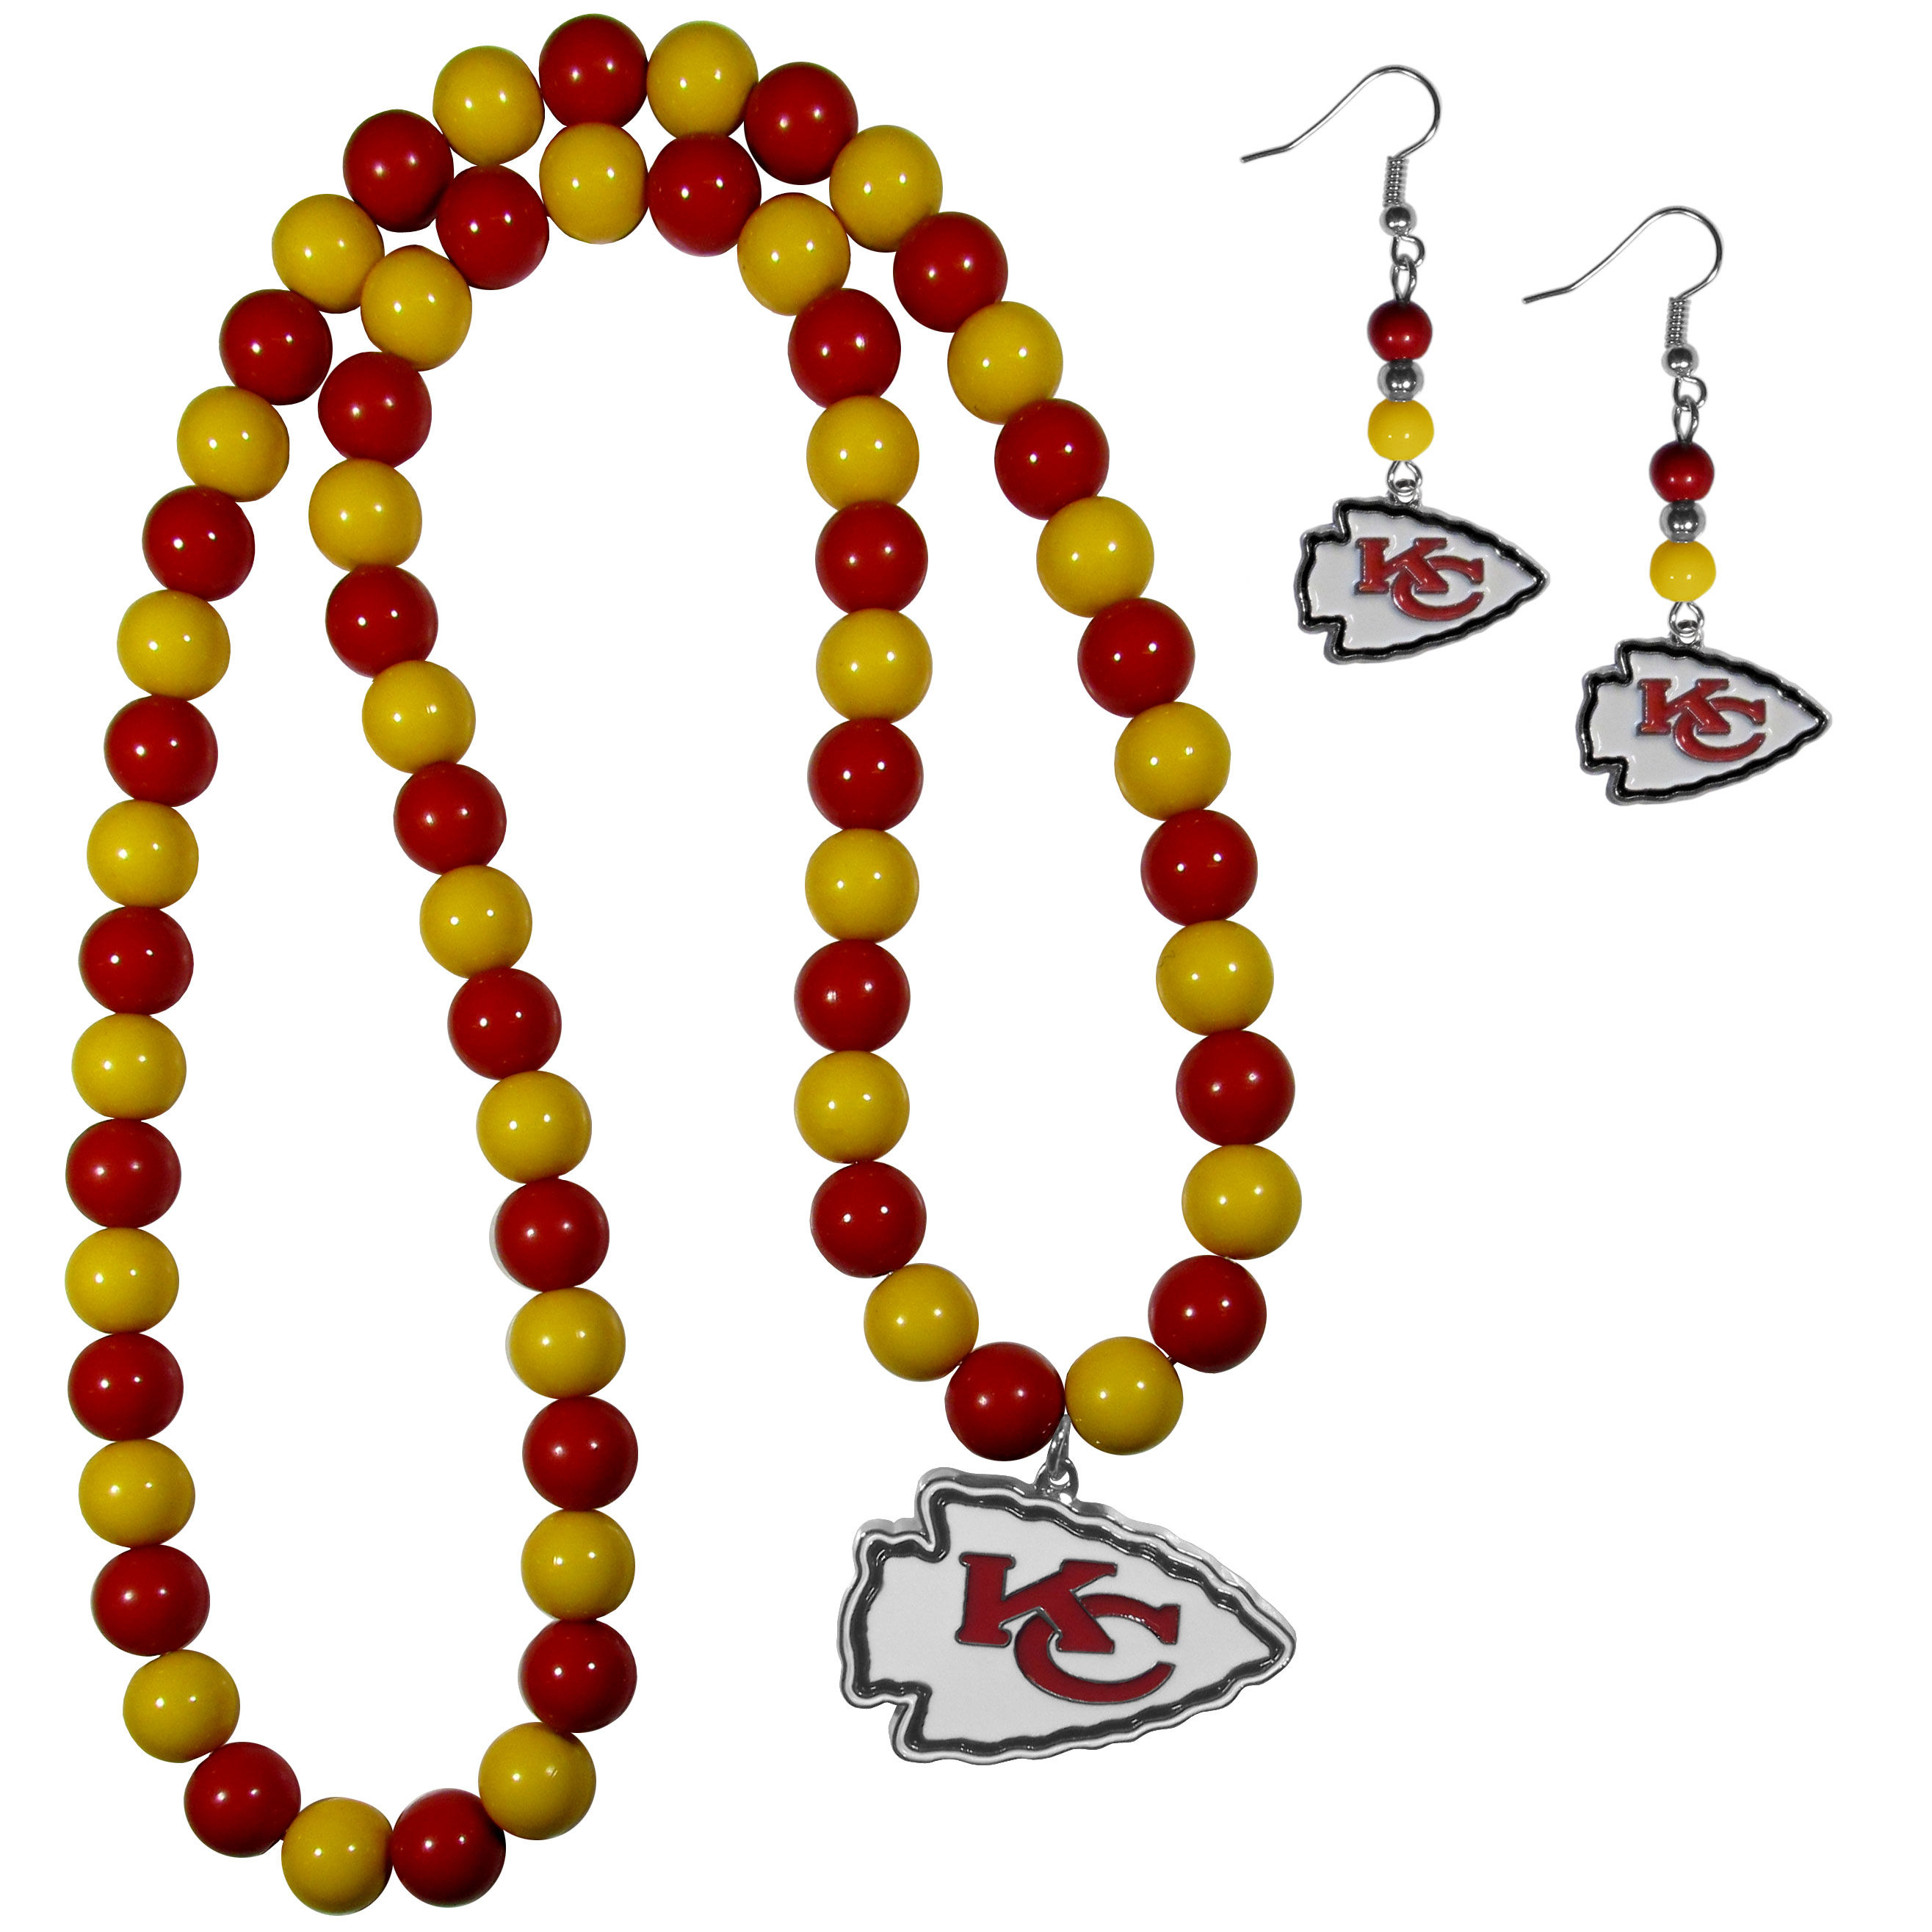 Kansas City Chiefs Fan Bead Earrings and Necklace Set - These fun and colorful Kansas City Chiefs fan bead jewelry pieces are an eyecatching way to show off your team spirit. The earrings feature hypoallergenic, nickel free fishhook post and 2 team colored beads with a beautifully carved team charm to finish this attractive dangle look. The mathcing bracelet has alternating team colored beads on a stretch cord and features a matching team charm.